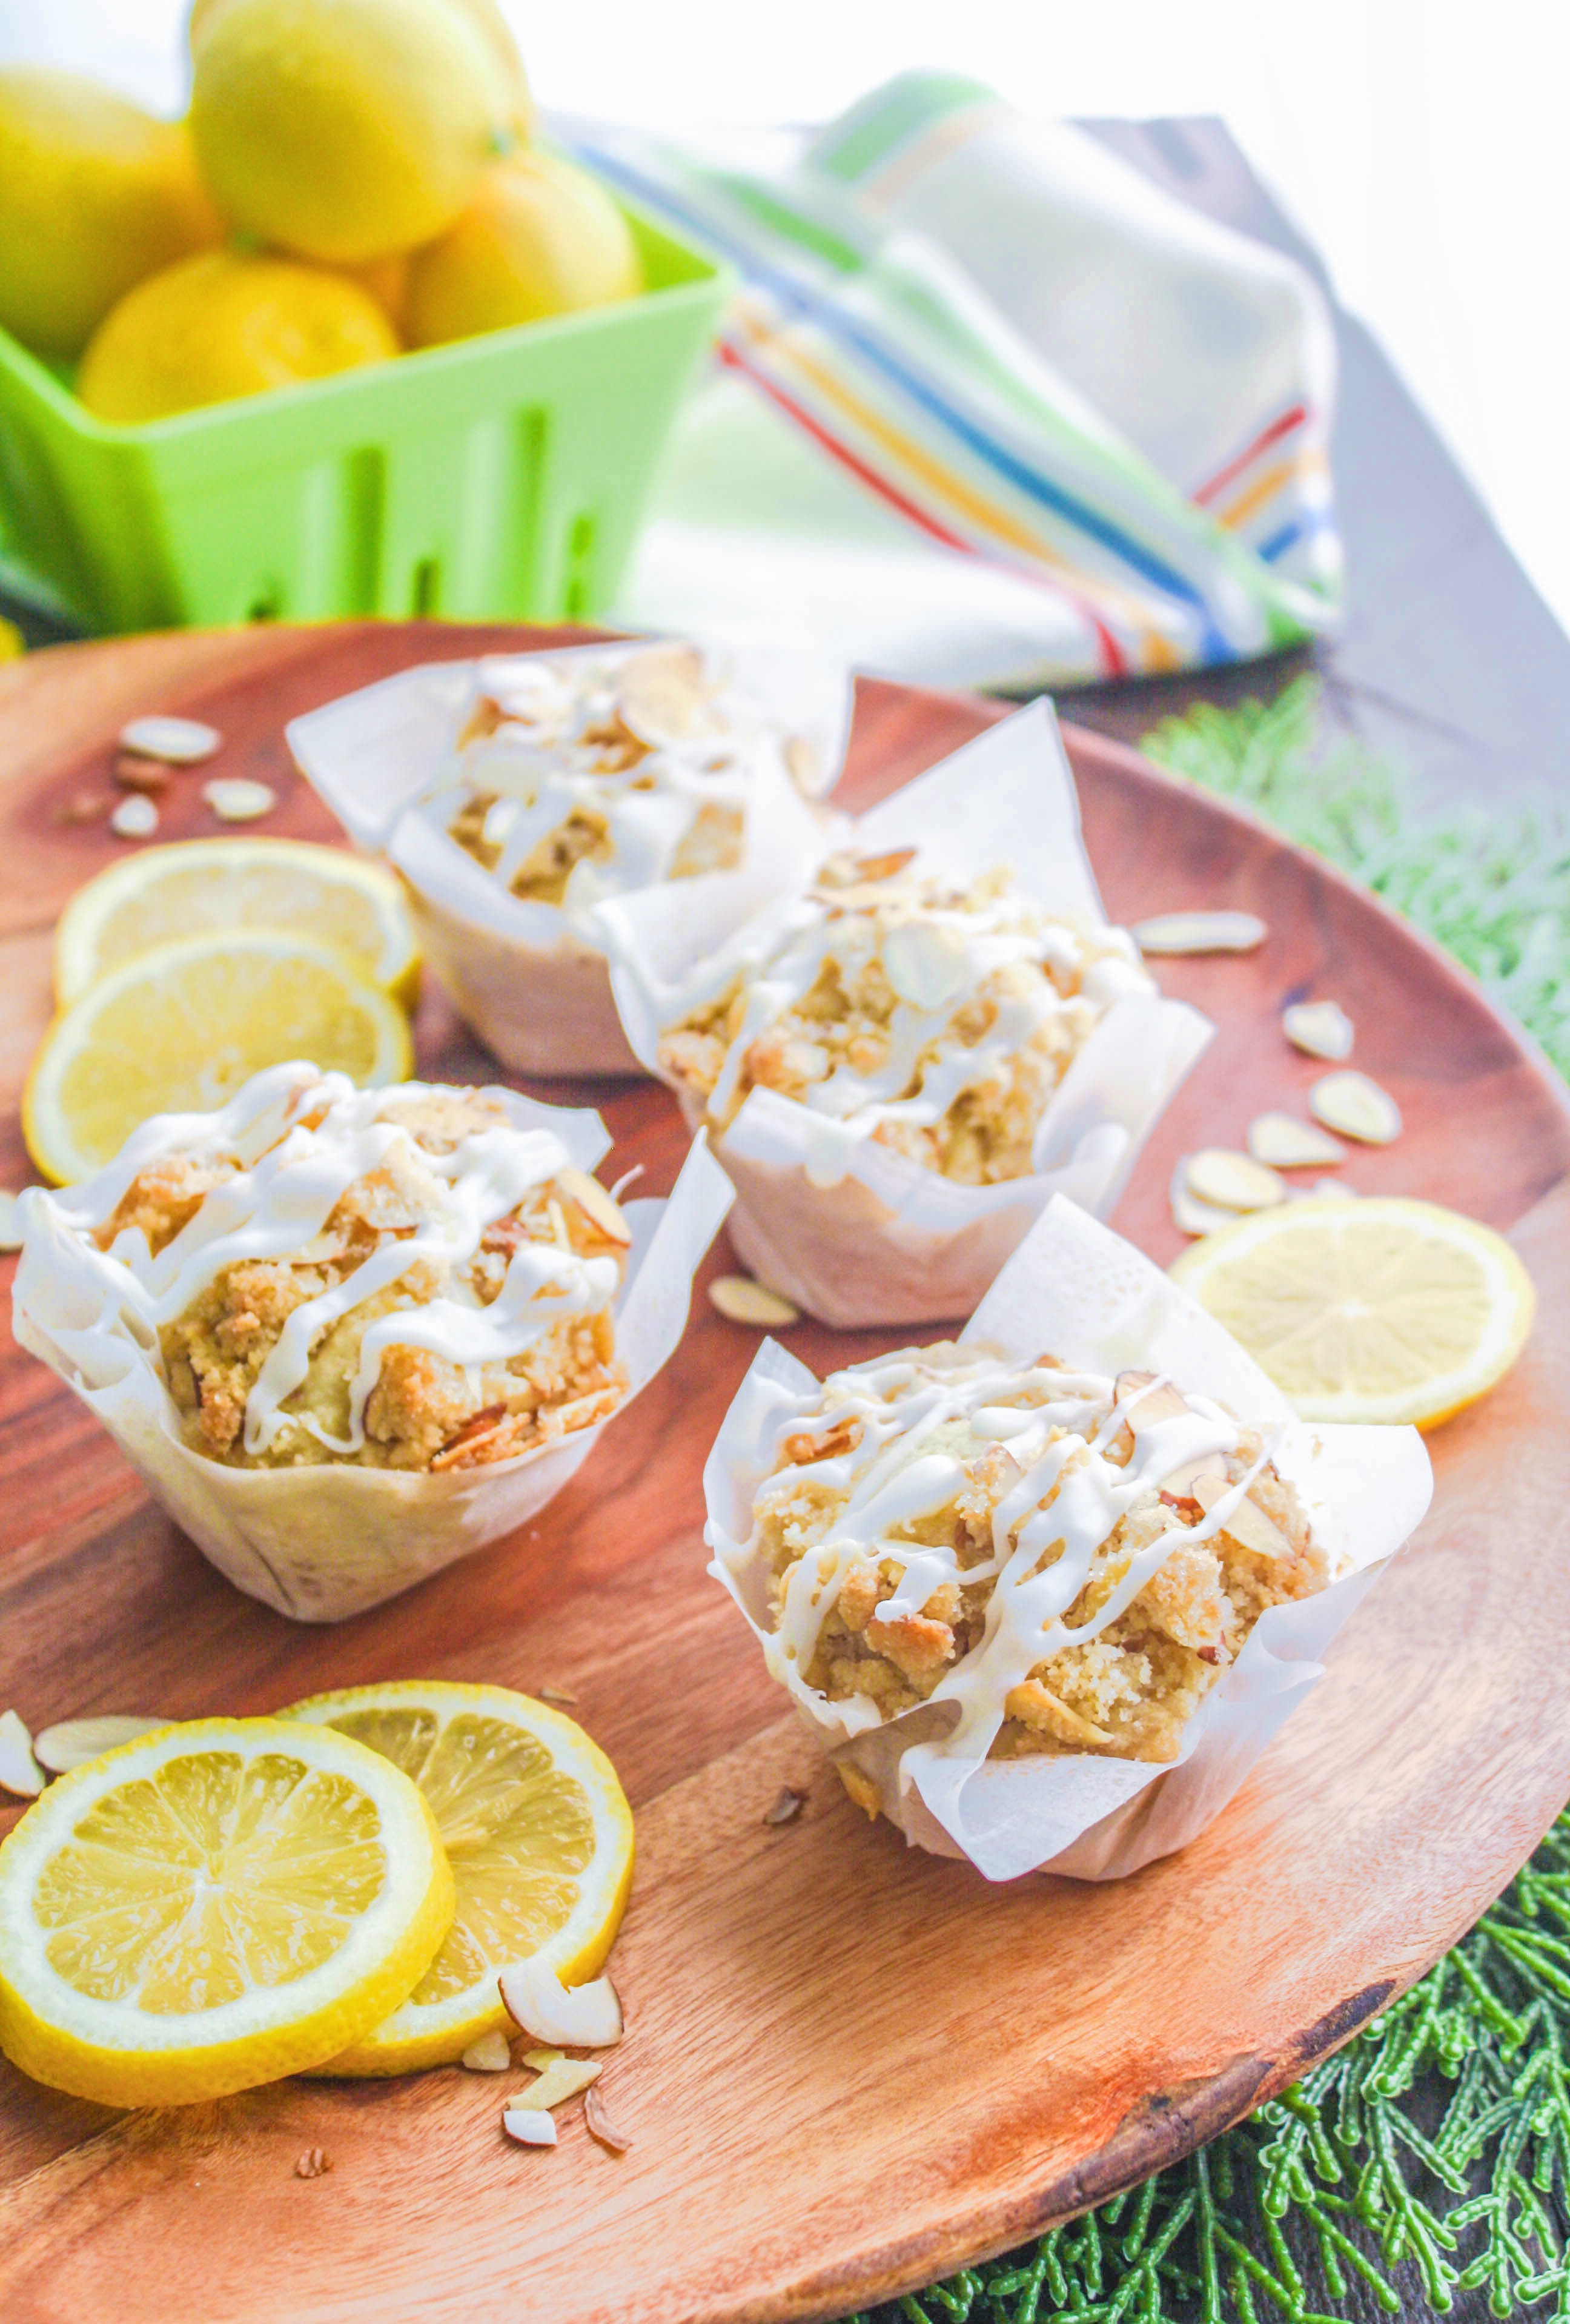 Lemon Muffins with Almond Streusel and Glaze make a wonderful breakfast. You'll love these lemon muffins for breakfast or an afternoon treat!